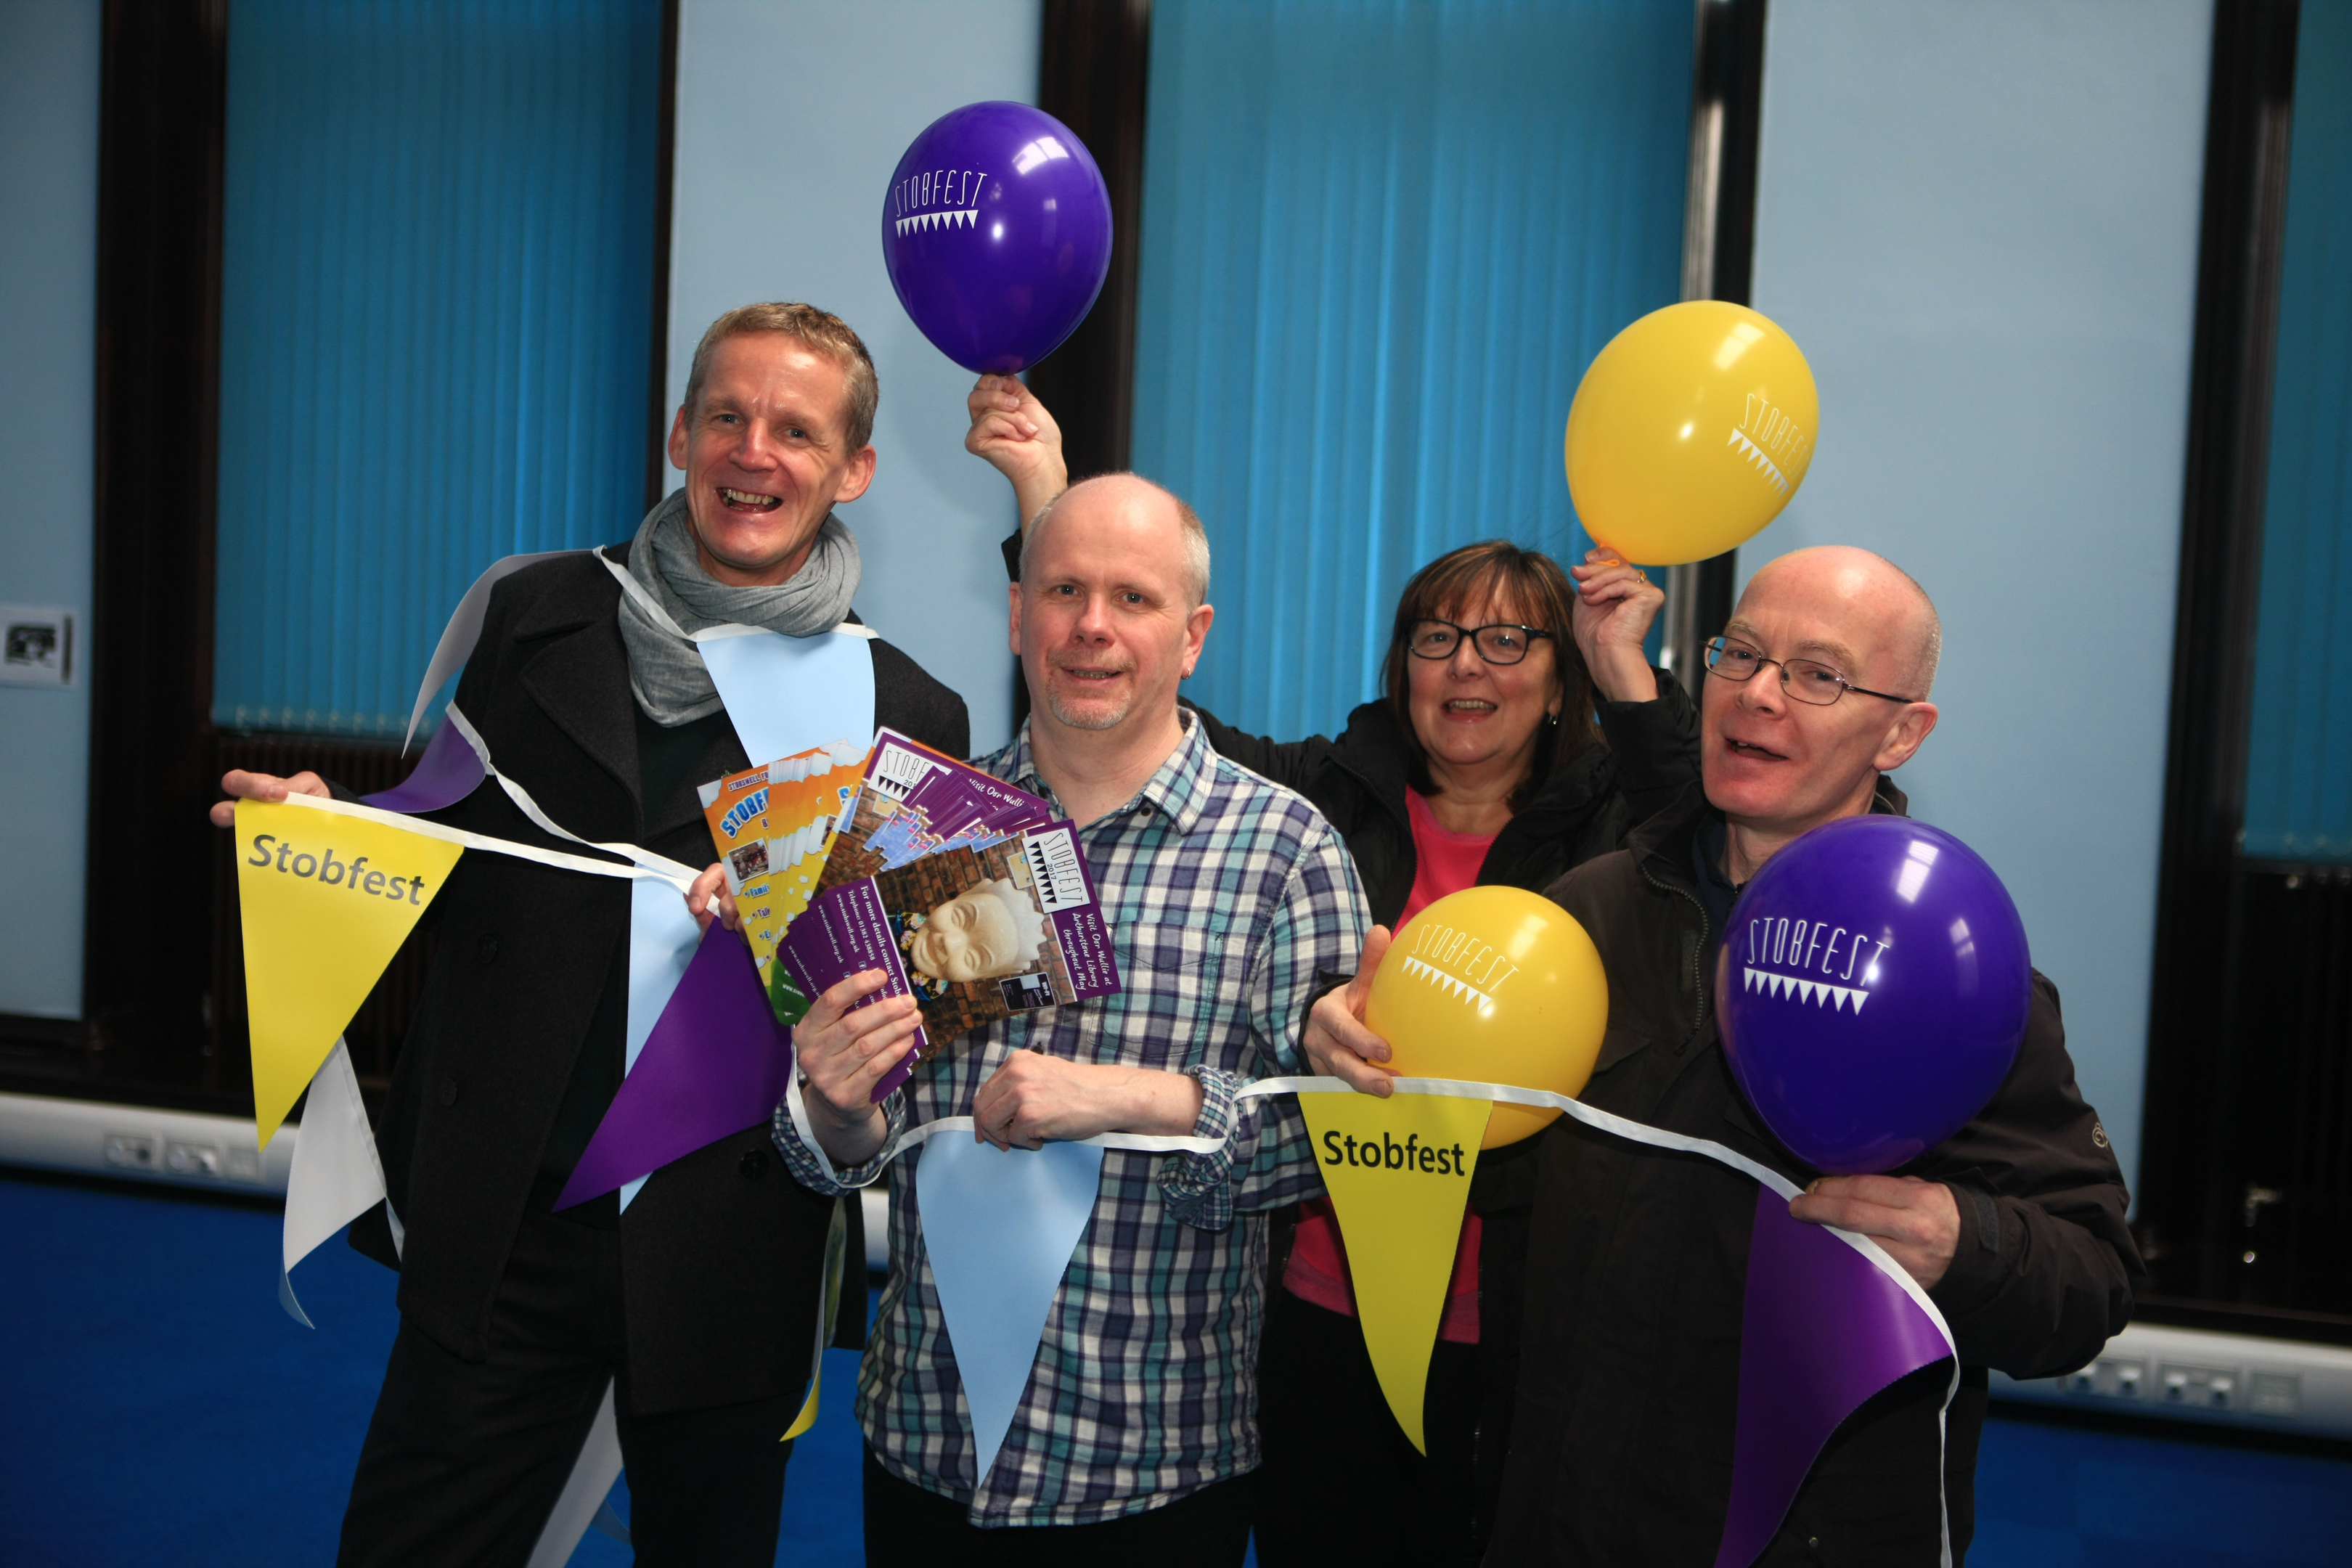 Some of the Stobsfest organisers: Colin Clement, Stuart Fairweather, Lorraine Clement and Duncan McCabe